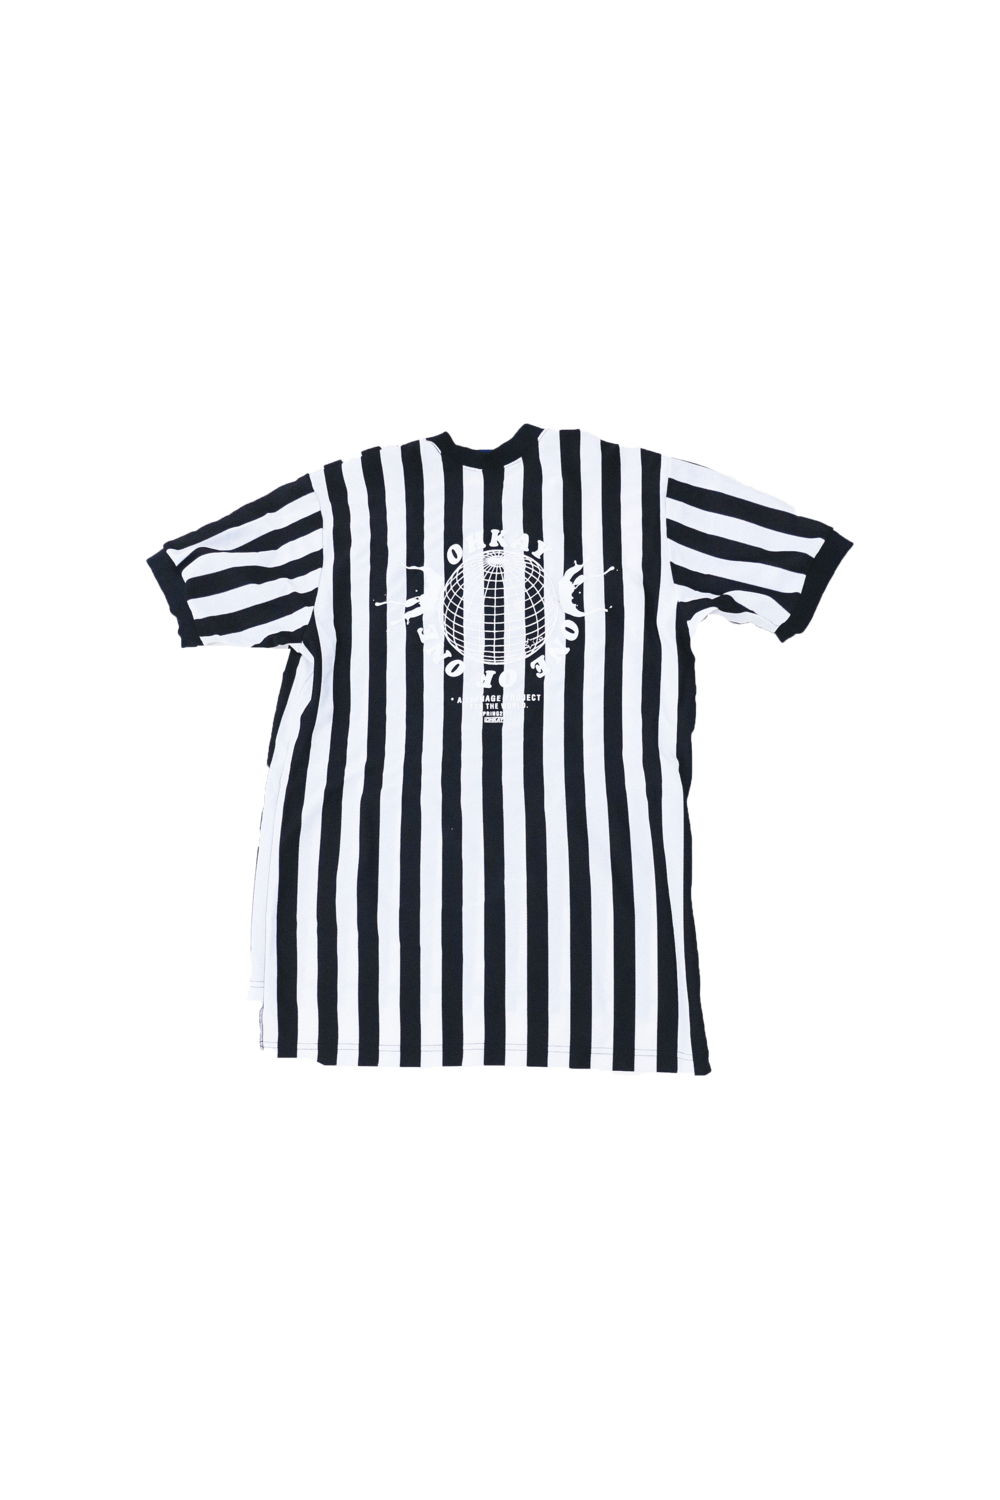 soccer striped back.png